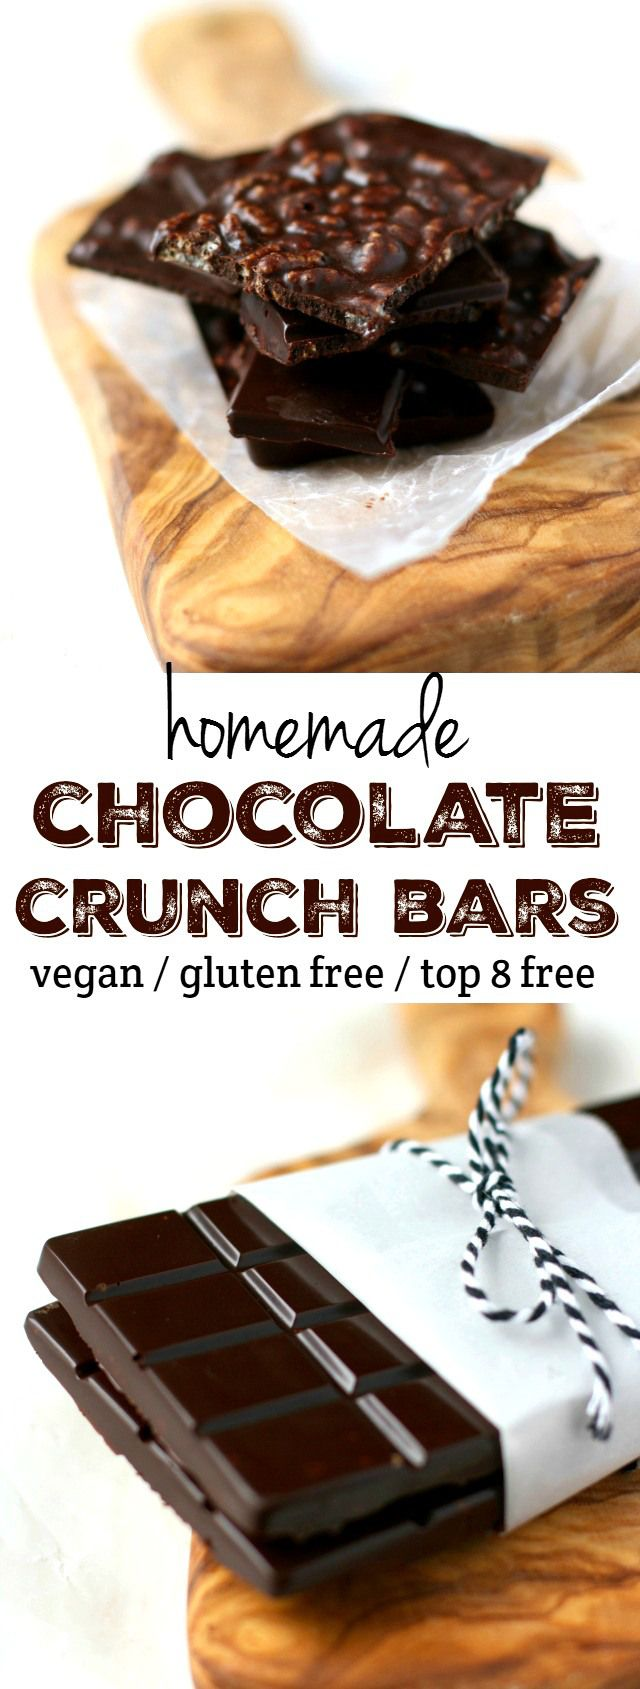 Homemade vegan chocolate crunch bars - these are so tasty and so much fun to make! A delicious version of a classic.